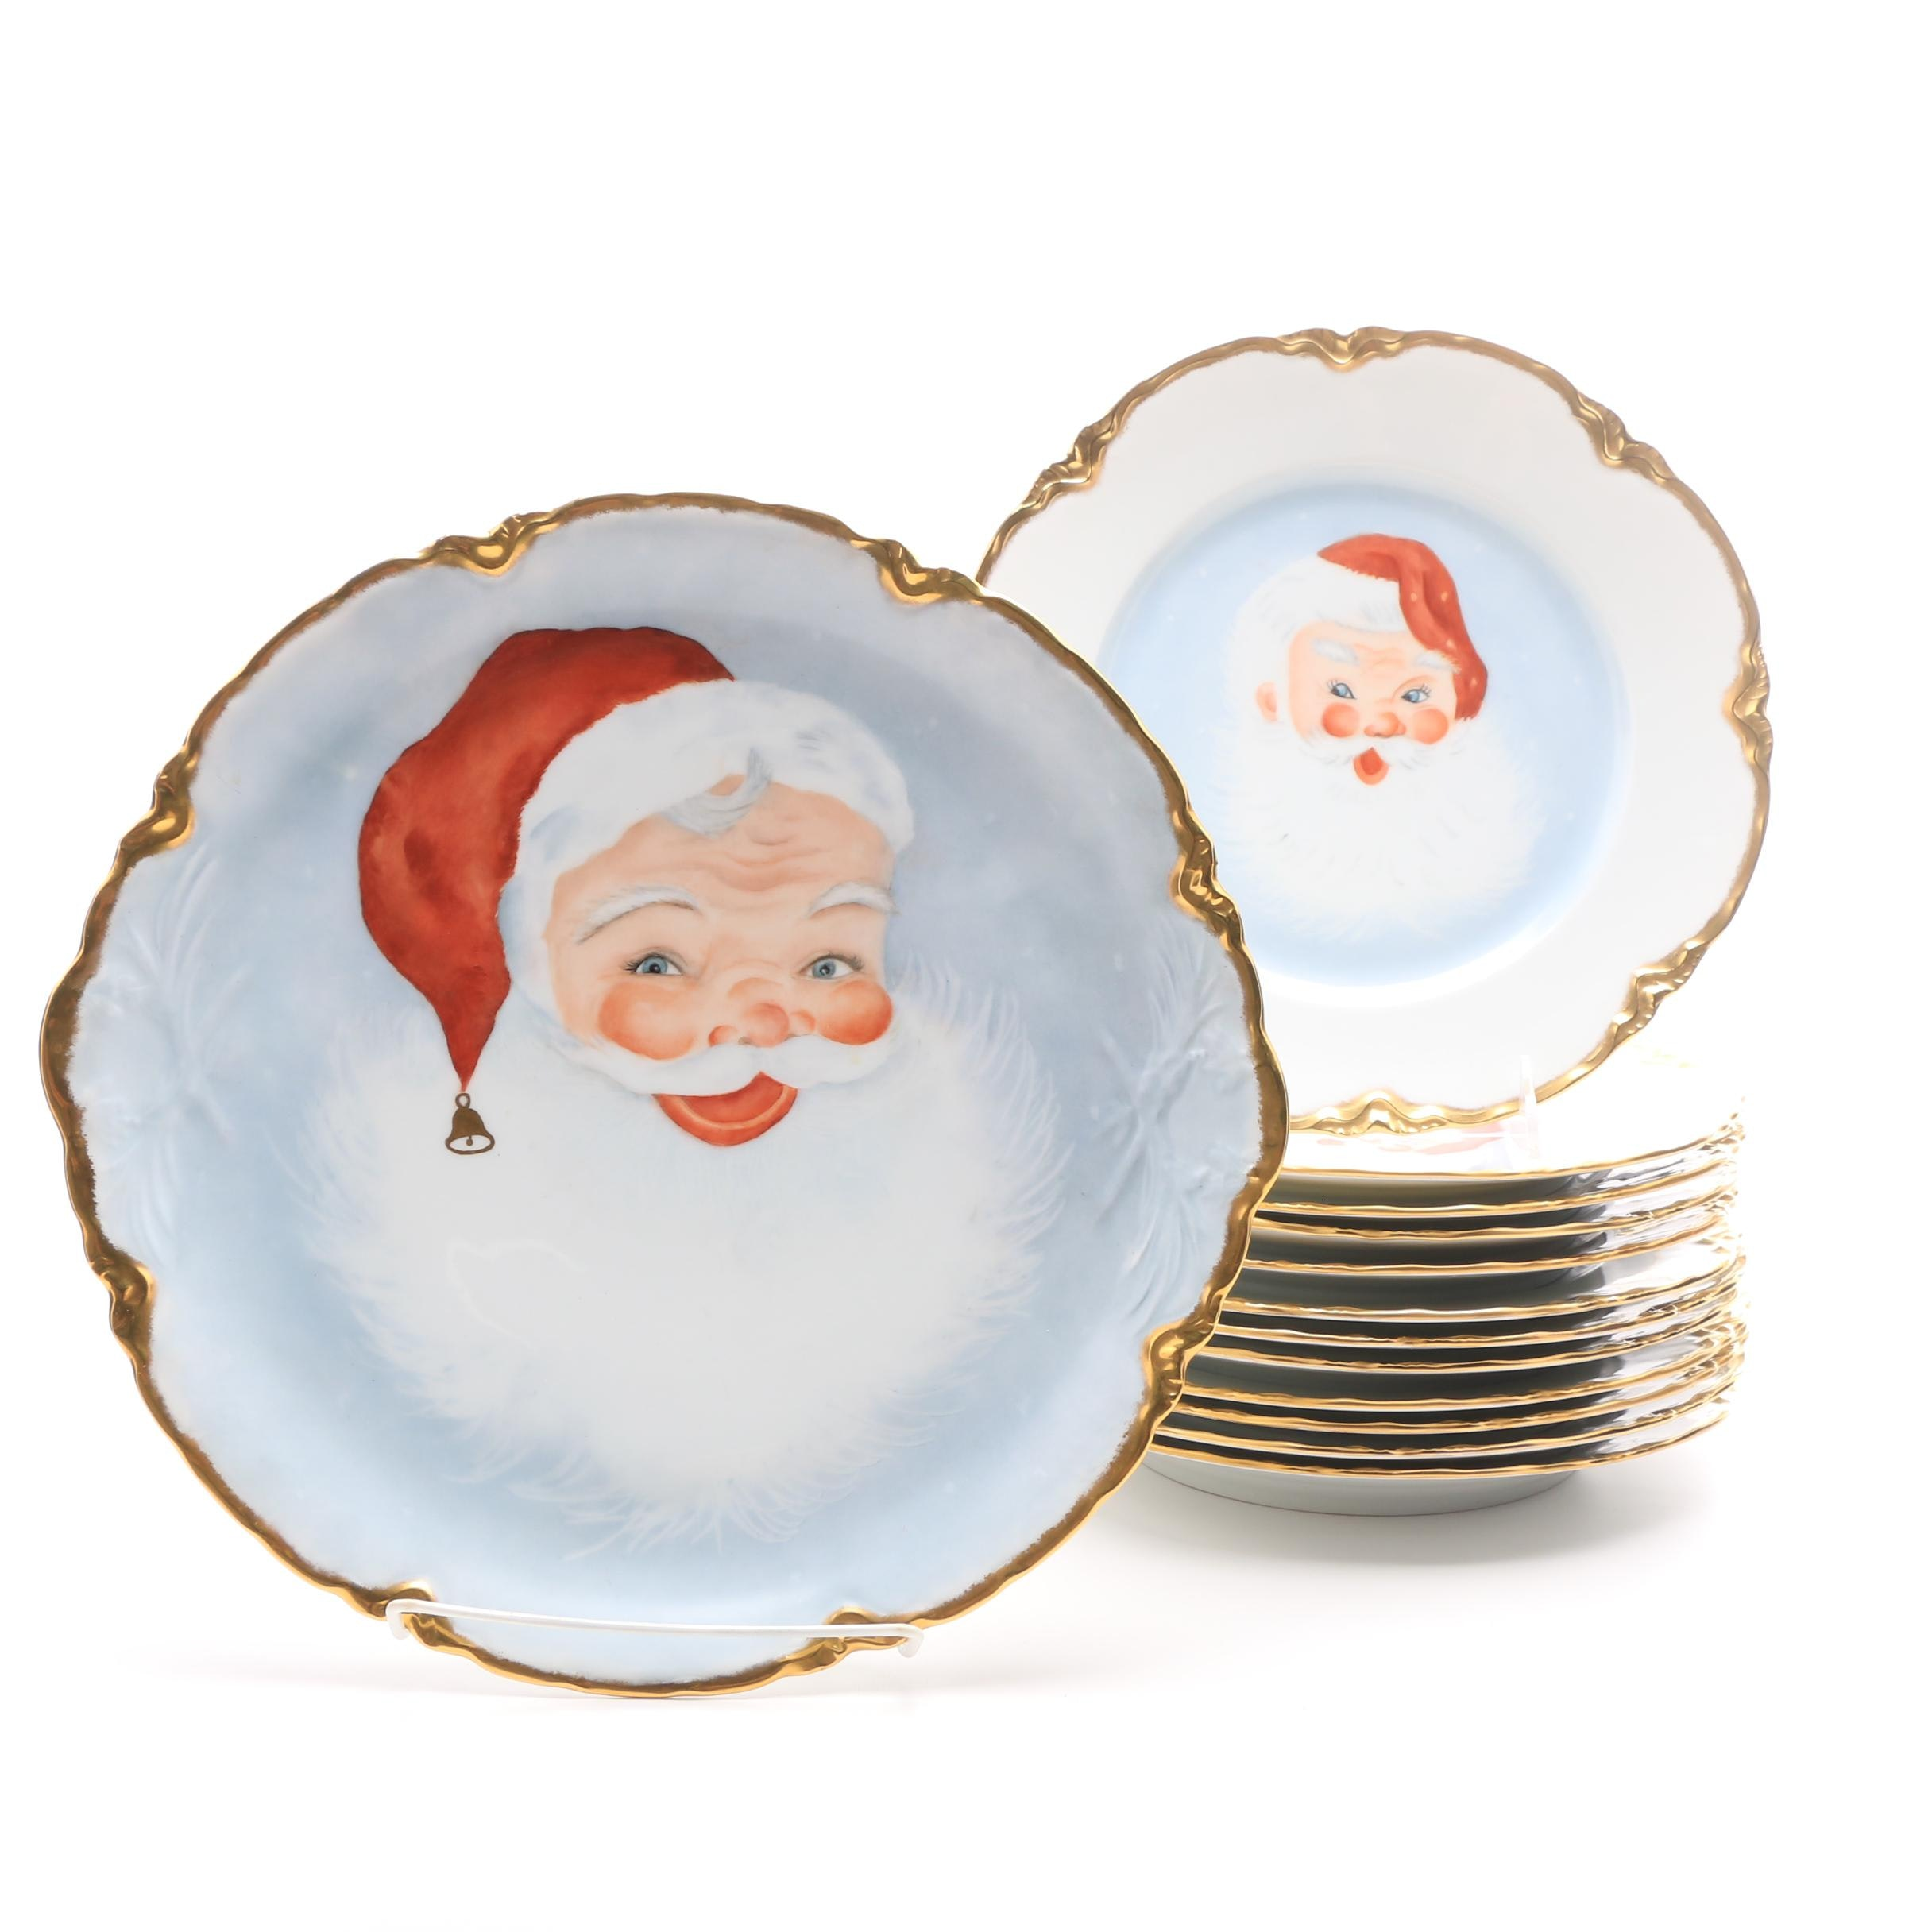 Vintage Huthschenreuther Plates Hand Painted by Artists with Faces of Santa